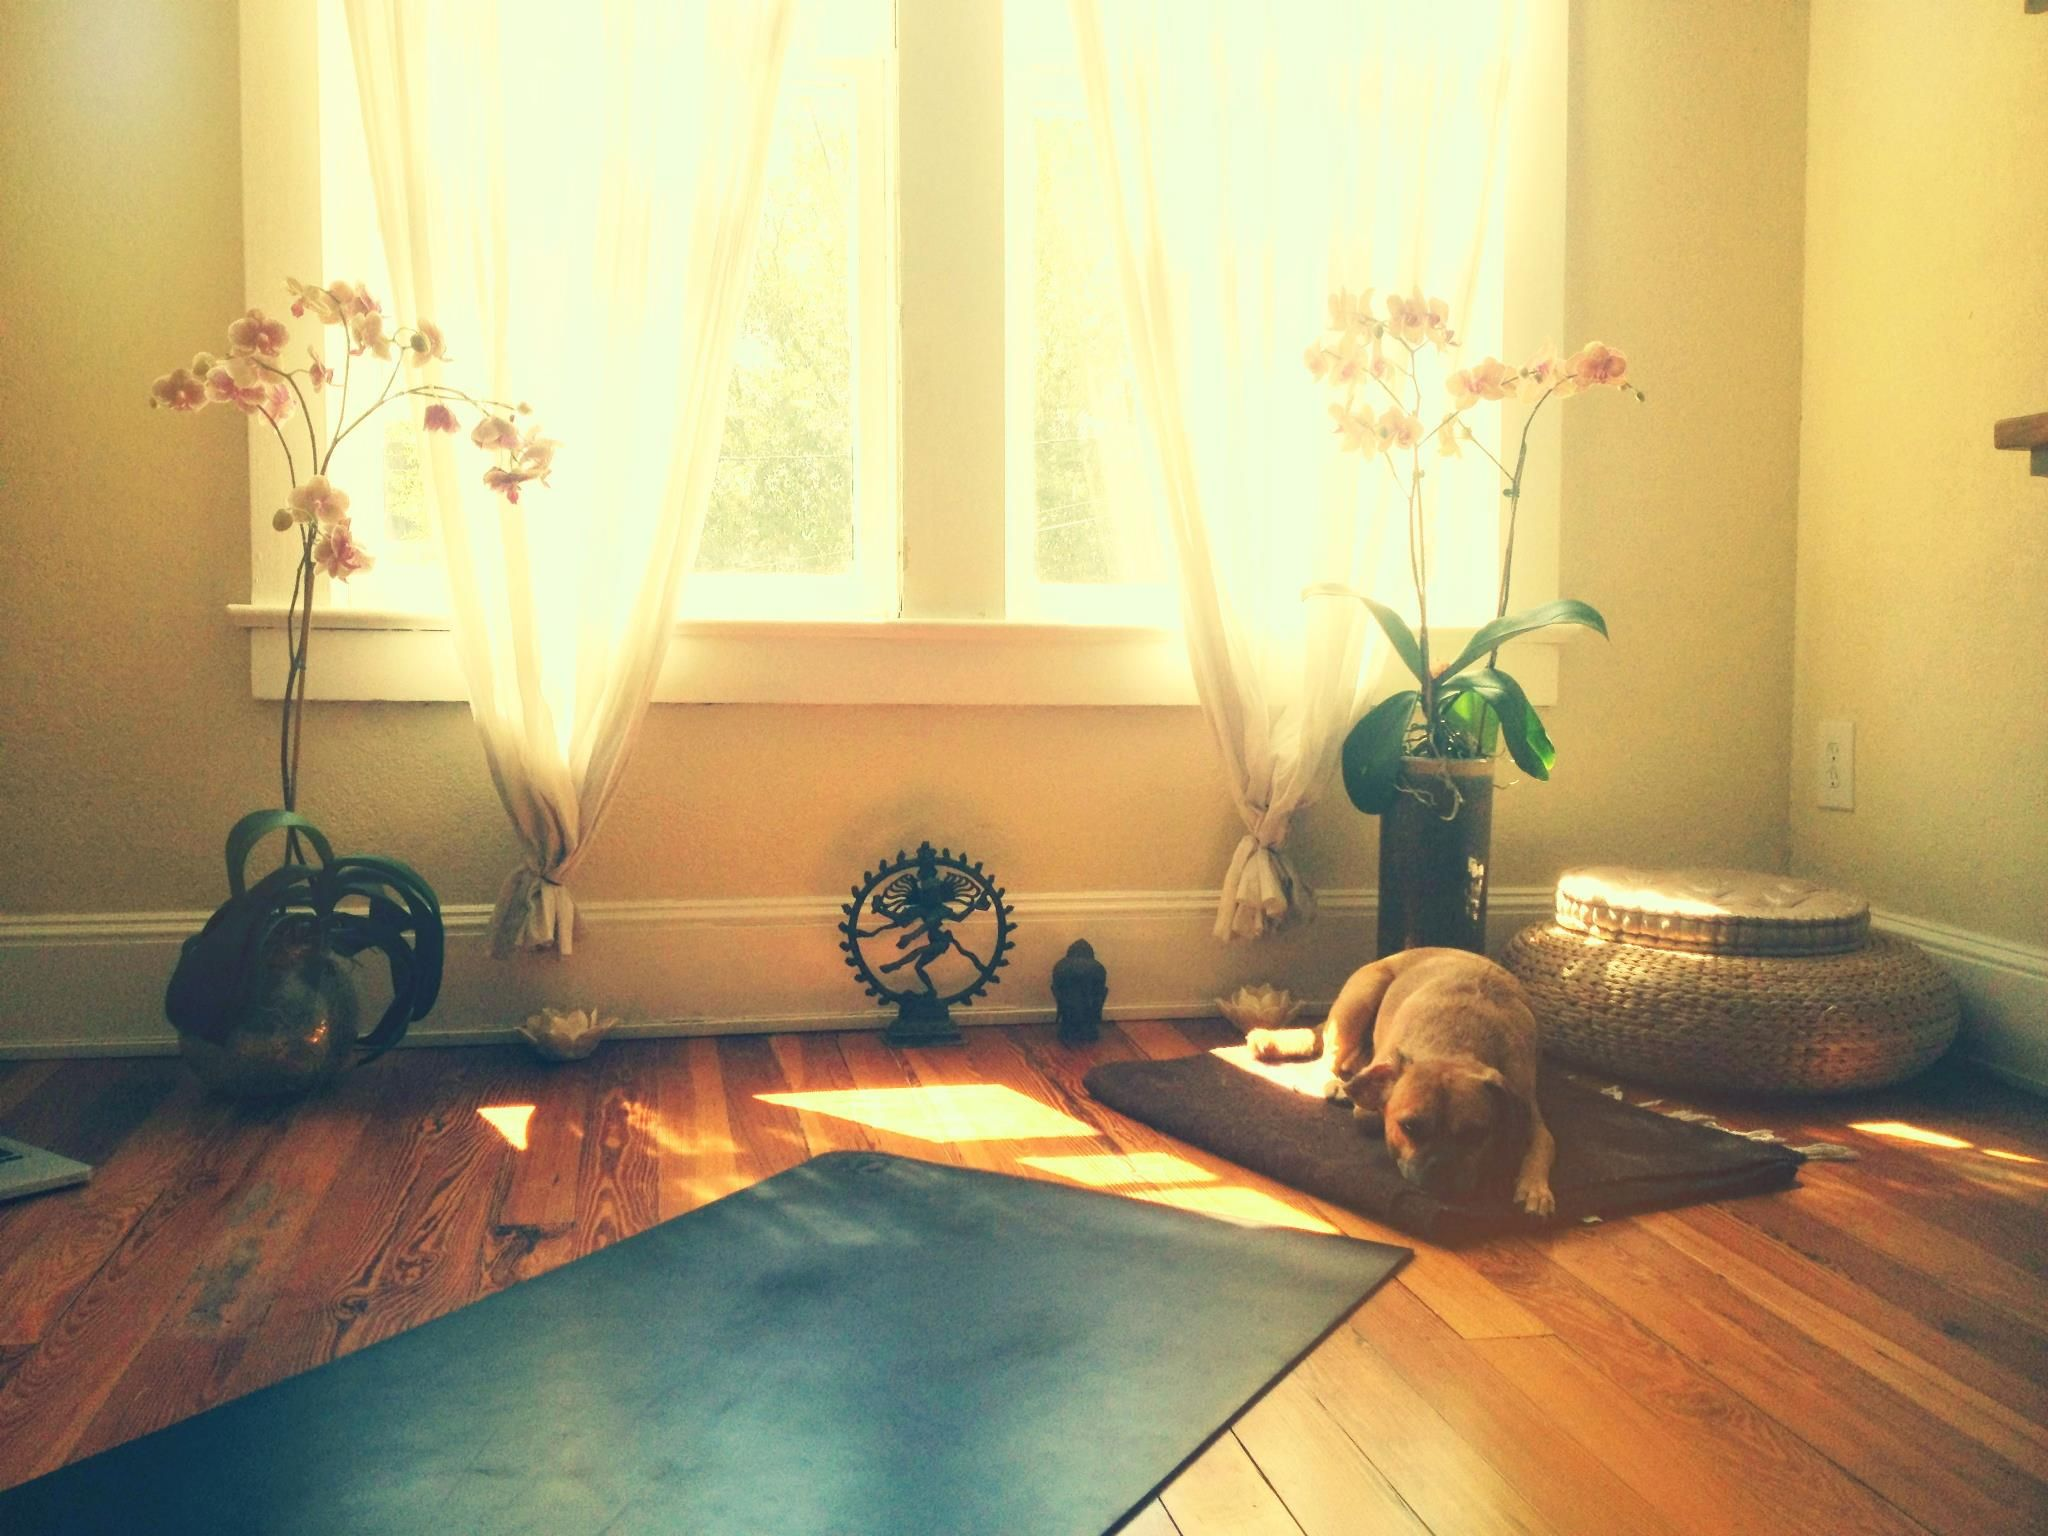 Kathryn budig 39 s yoga room amassing a dream home pinterest for How to make a yoga room